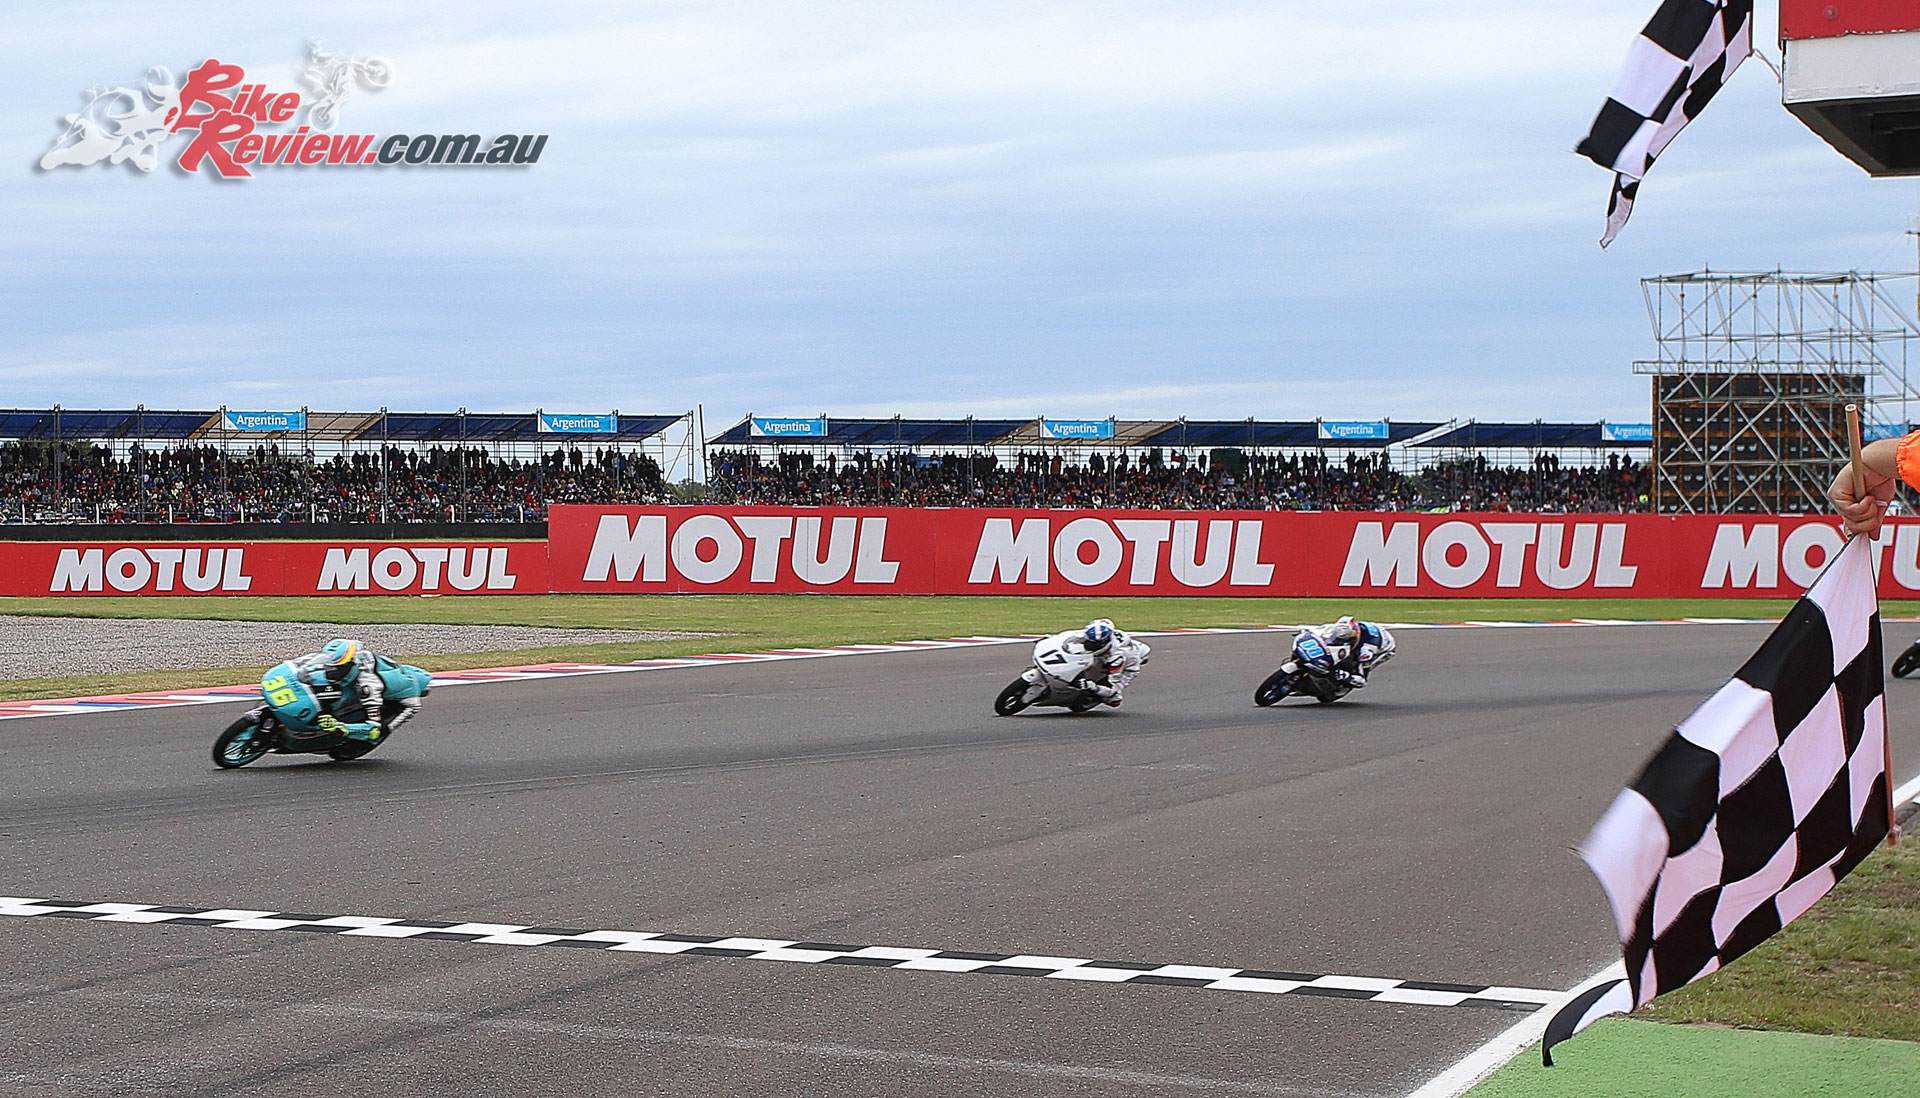 Motogp Argentina 2017 Results Maverick Vinales Wins From | MotoGP 2017 Info, Video, Points Table